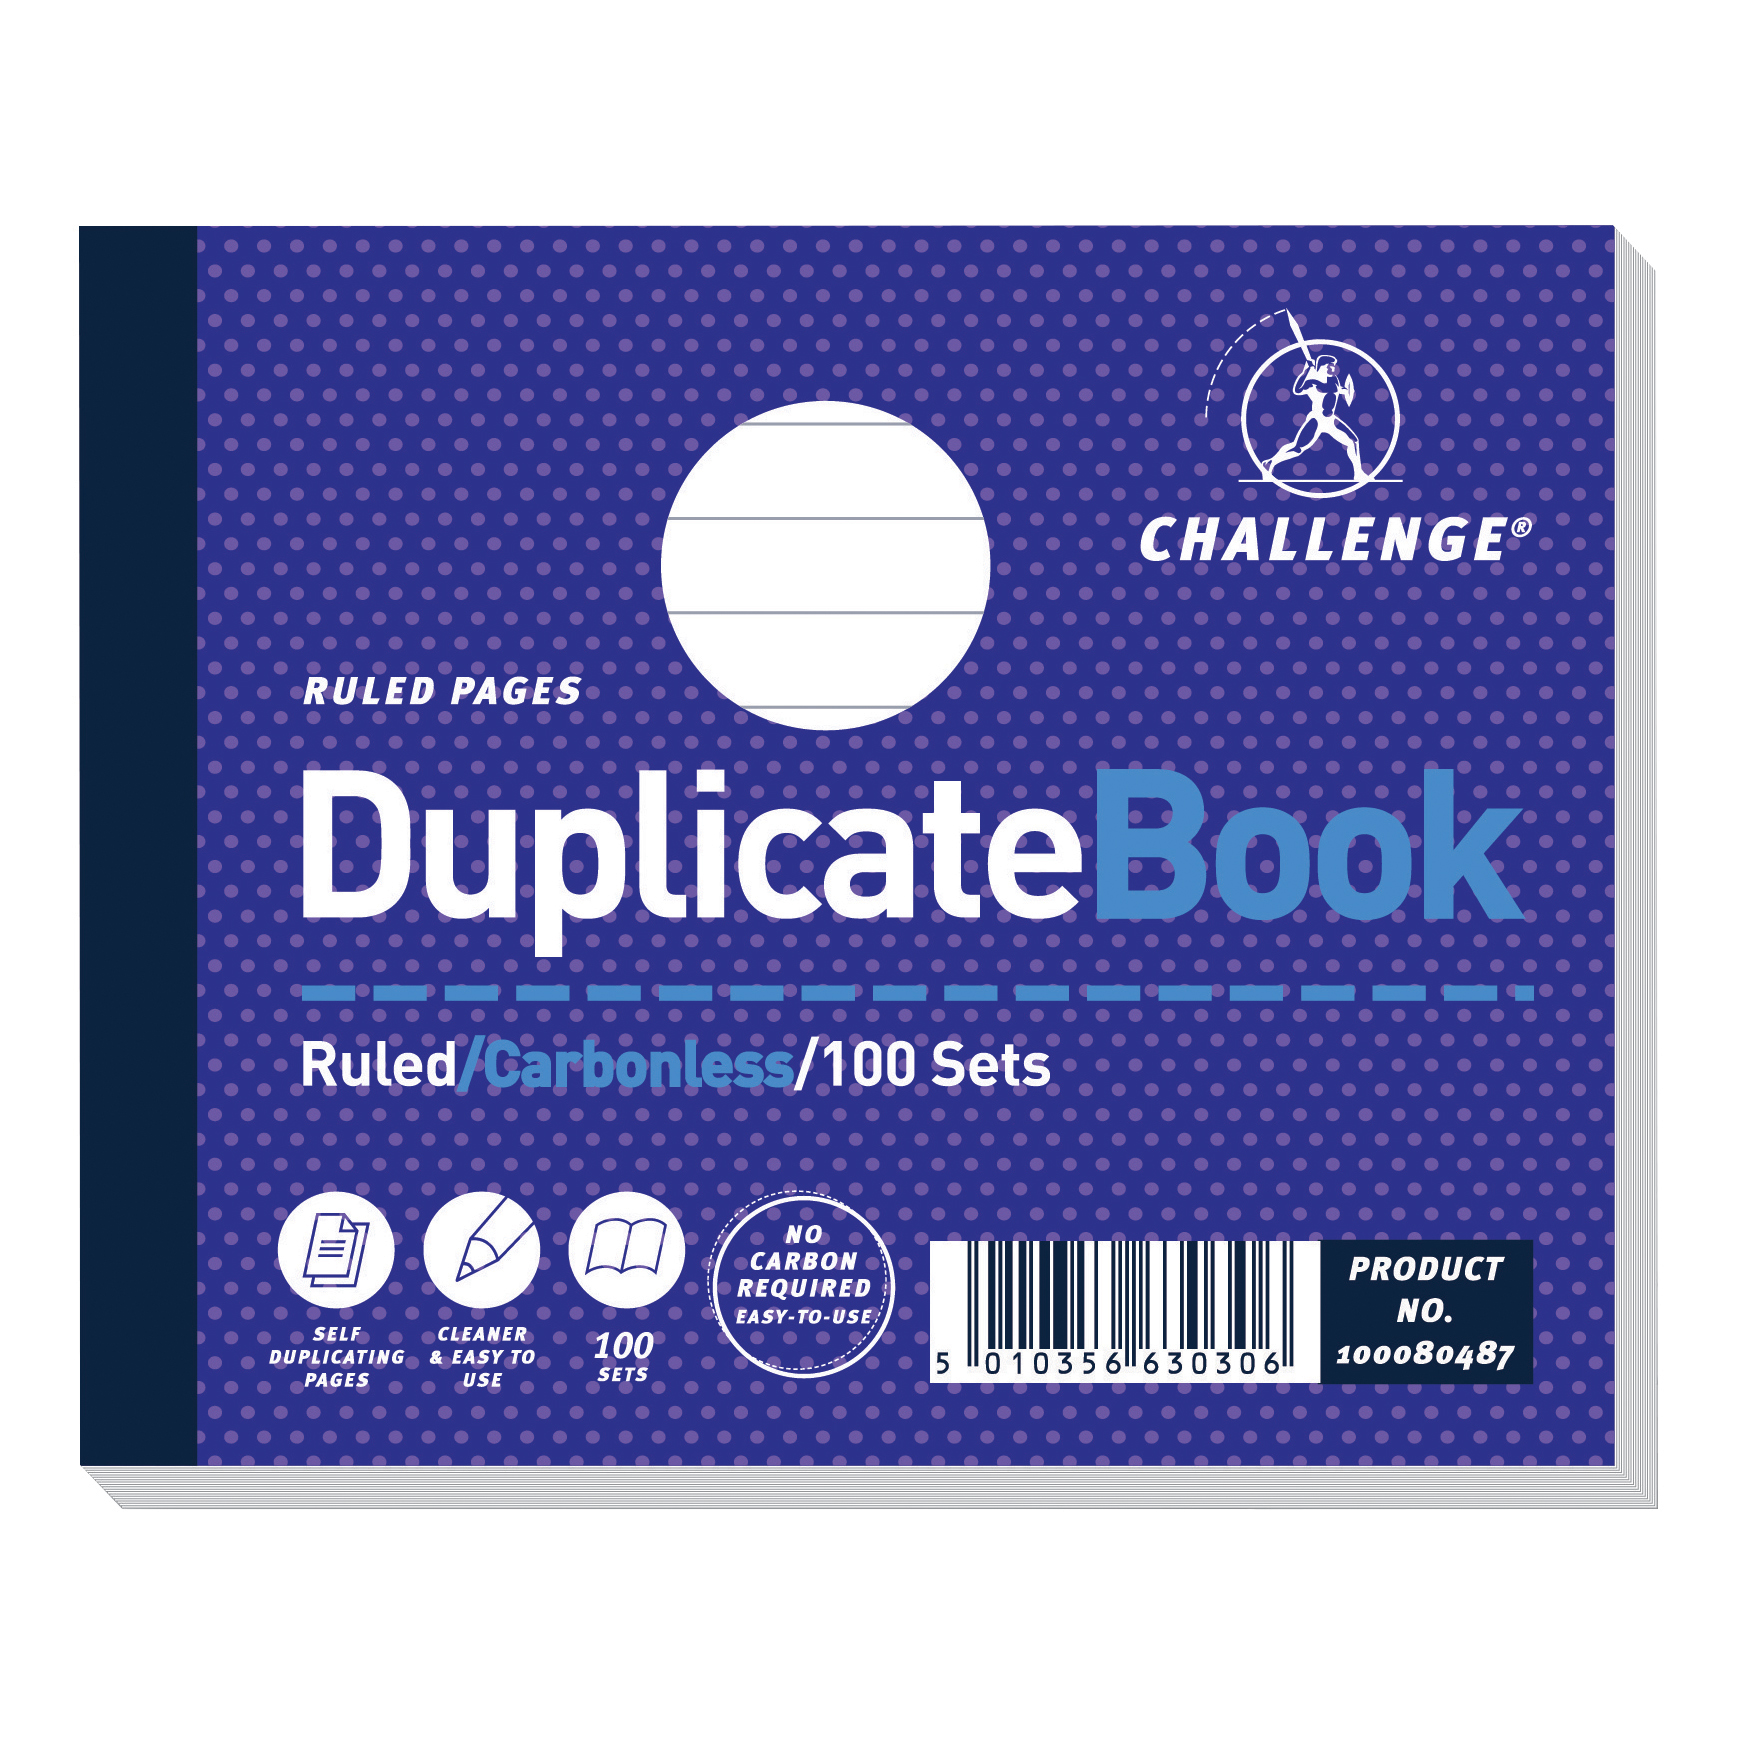 Challenge Duplicate Book Carbonless Ruled 100 Sets 105x130mm Ref 100080487 Pack 5